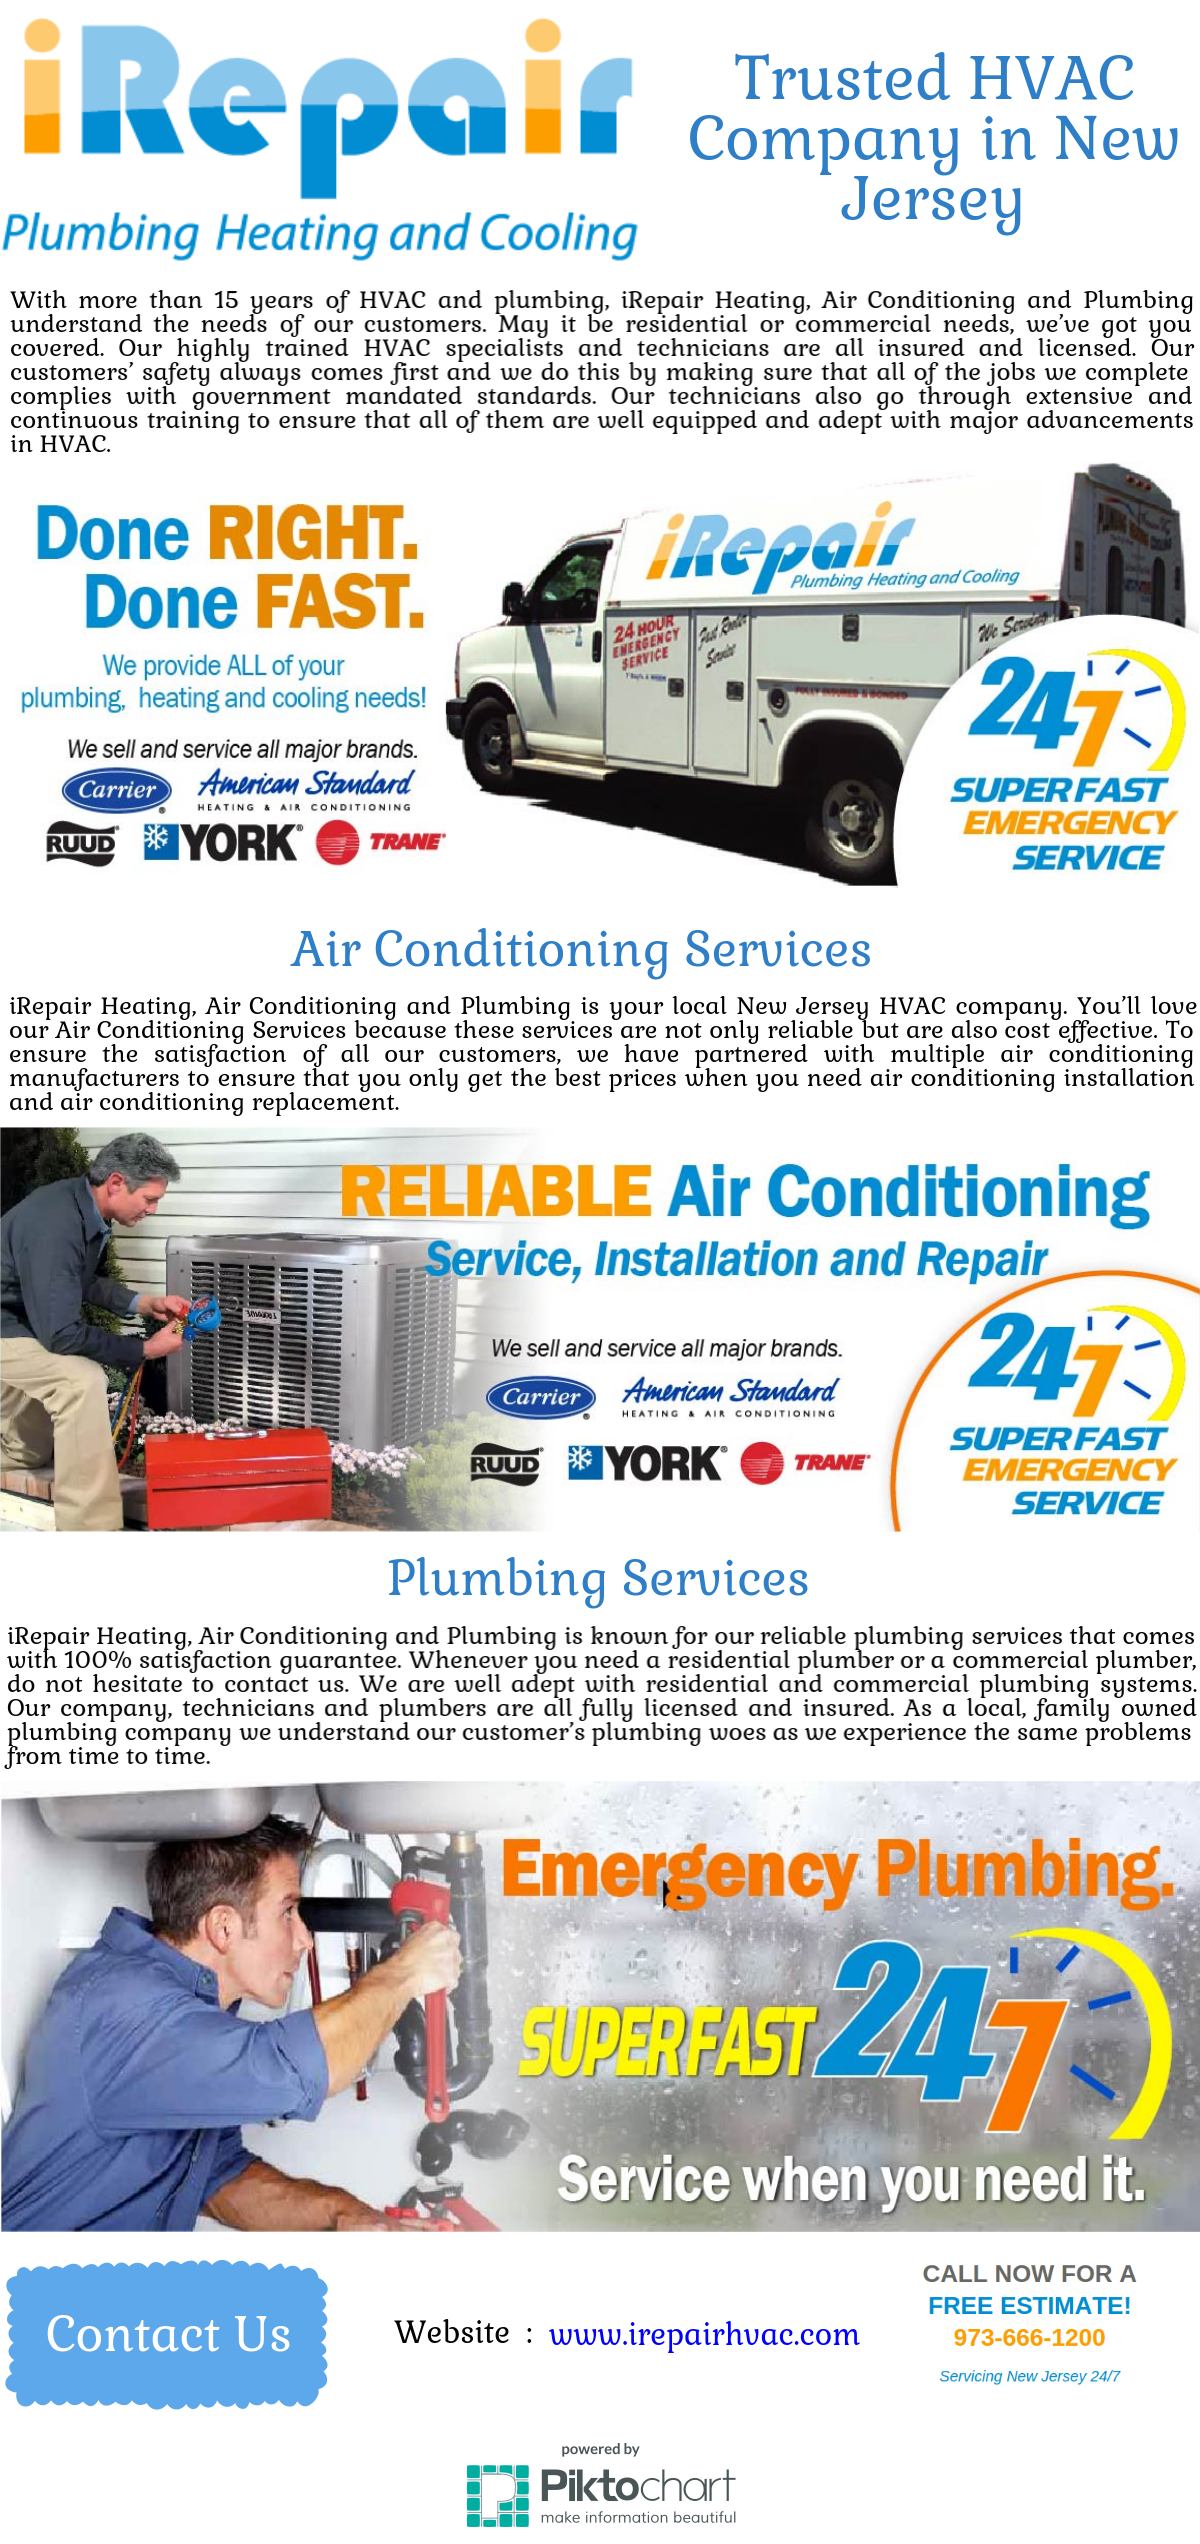 With More Than 15 Years Of Hvac And Plumbing Irepair Heating Air